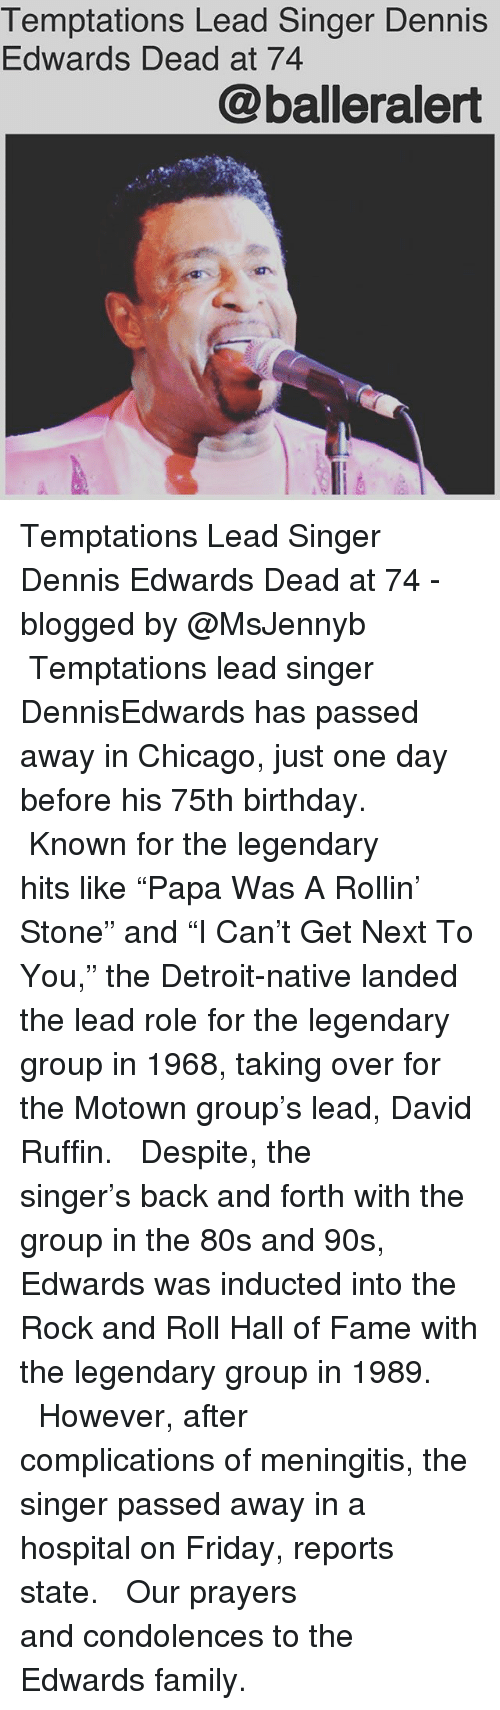 "80s, Birthday, and Chicago: Temptations Lead Singer Dennis  Edwards Dead at 74  @balleralert Temptations Lead Singer Dennis Edwards Dead at 74 - blogged by @MsJennyb ⠀⠀⠀⠀⠀⠀⠀ ⠀⠀⠀⠀⠀⠀⠀ Temptations lead singer DennisEdwards has passed away in Chicago, just one day before his 75th birthday. ⠀⠀⠀⠀⠀⠀⠀ ⠀⠀⠀⠀⠀⠀⠀ Known for the legendary hits like ""Papa Was A Rollin' Stone"" and ""I Can't Get Next To You,"" the Detroit-native landed the lead role for the legendary group in 1968, taking over for the Motown group's lead, David Ruffin. ⠀⠀⠀⠀⠀⠀⠀ ⠀⠀⠀⠀⠀⠀⠀ Despite, the singer's back and forth with the group in the 80s and 90s, Edwards was inducted into the Rock and Roll Hall of Fame with the legendary group in 1989. ⠀⠀⠀⠀⠀⠀⠀ ⠀⠀⠀⠀⠀⠀⠀ However, after complications of meningitis, the singer passed away in a hospital on Friday, reports state. ⠀⠀⠀⠀⠀⠀⠀ ⠀⠀⠀⠀⠀⠀⠀ Our prayers and condolences to the Edwards family."